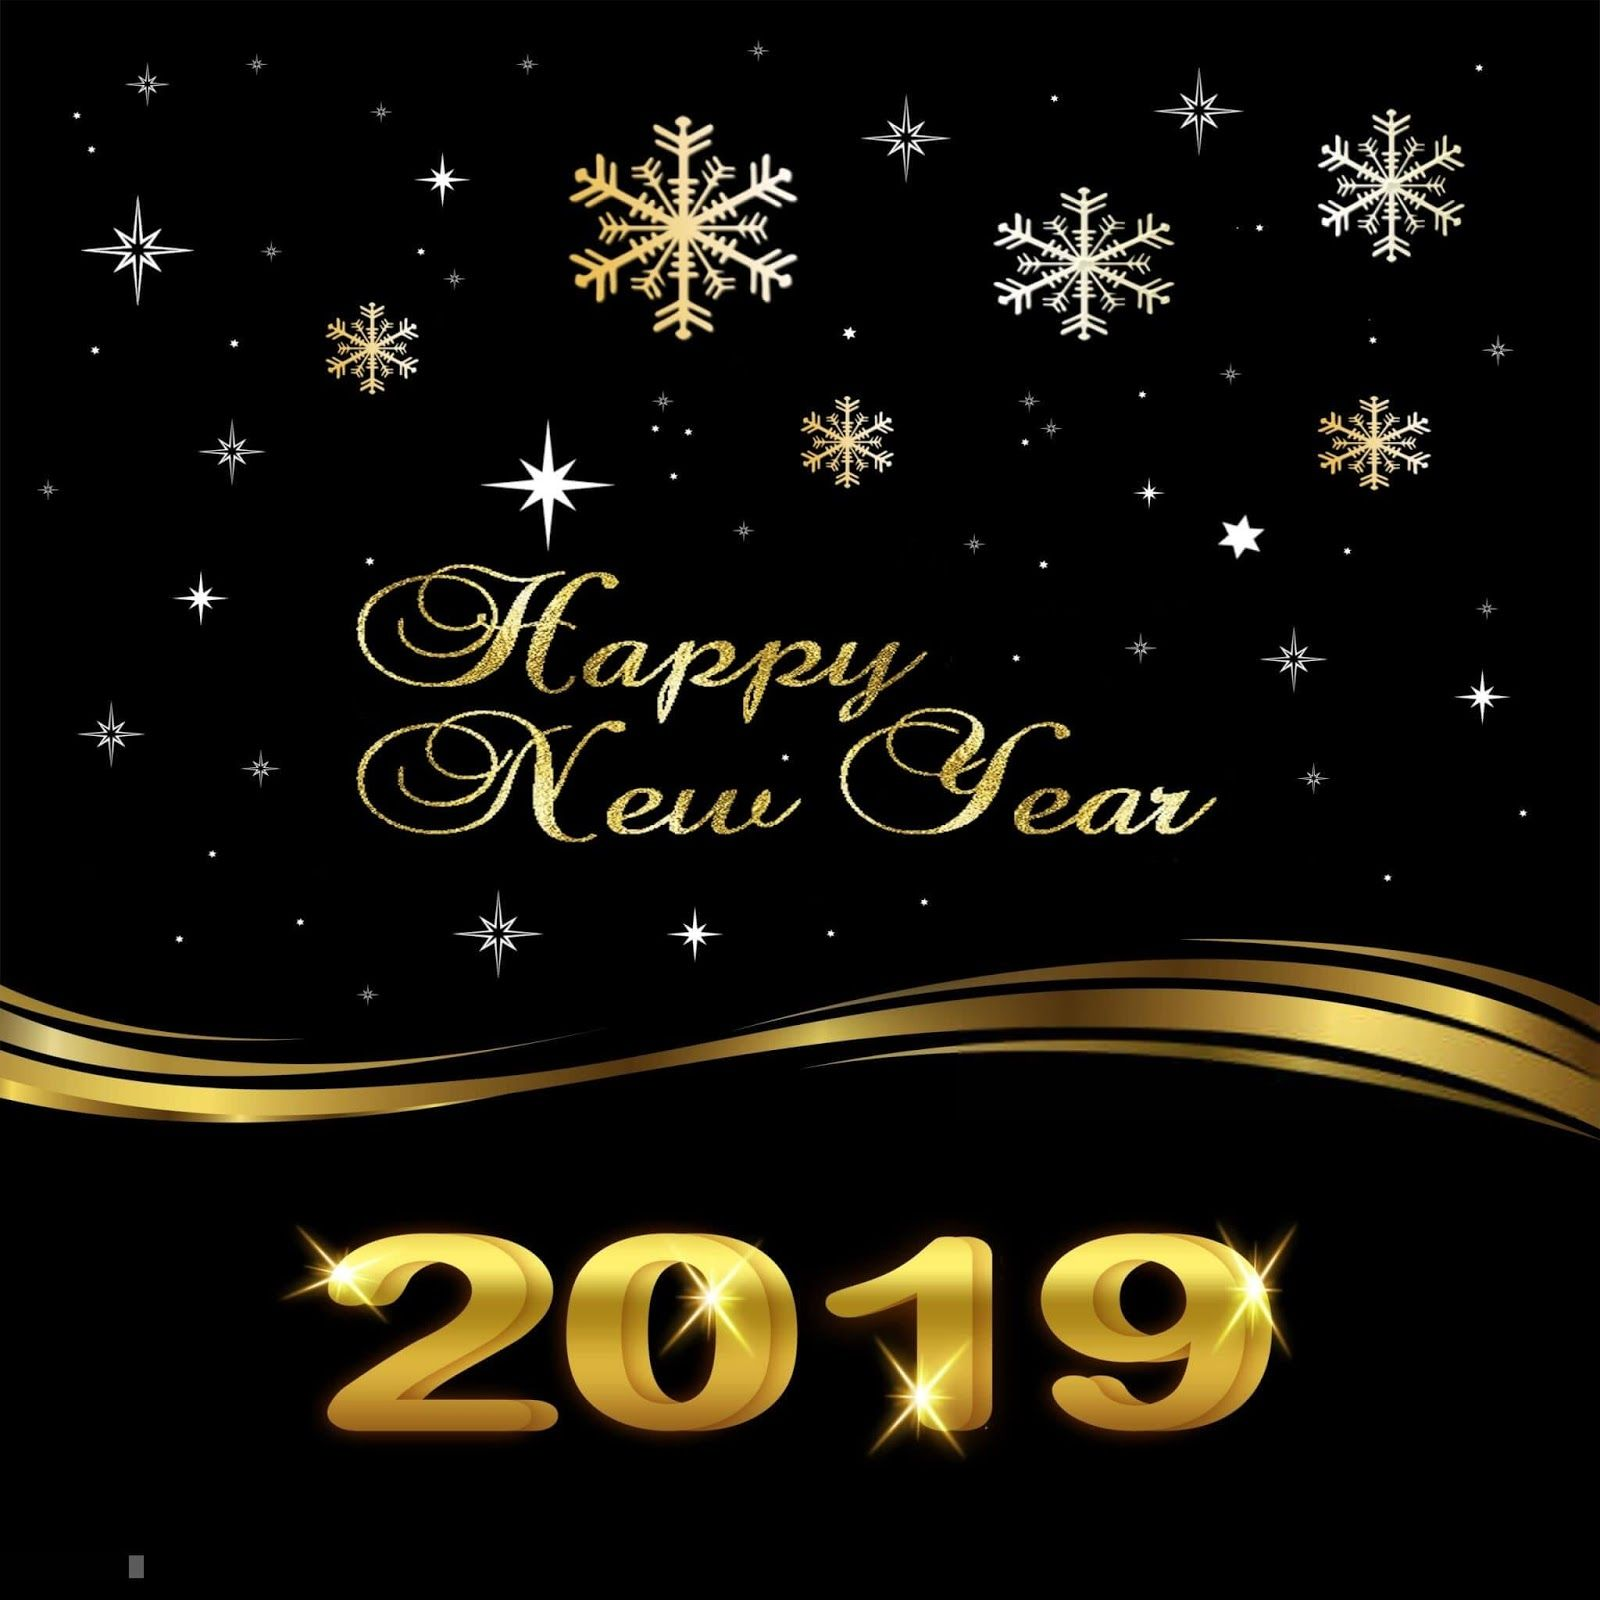 Happy New Year 2020 HD Wallpaper Images Download Happy 1600x1600